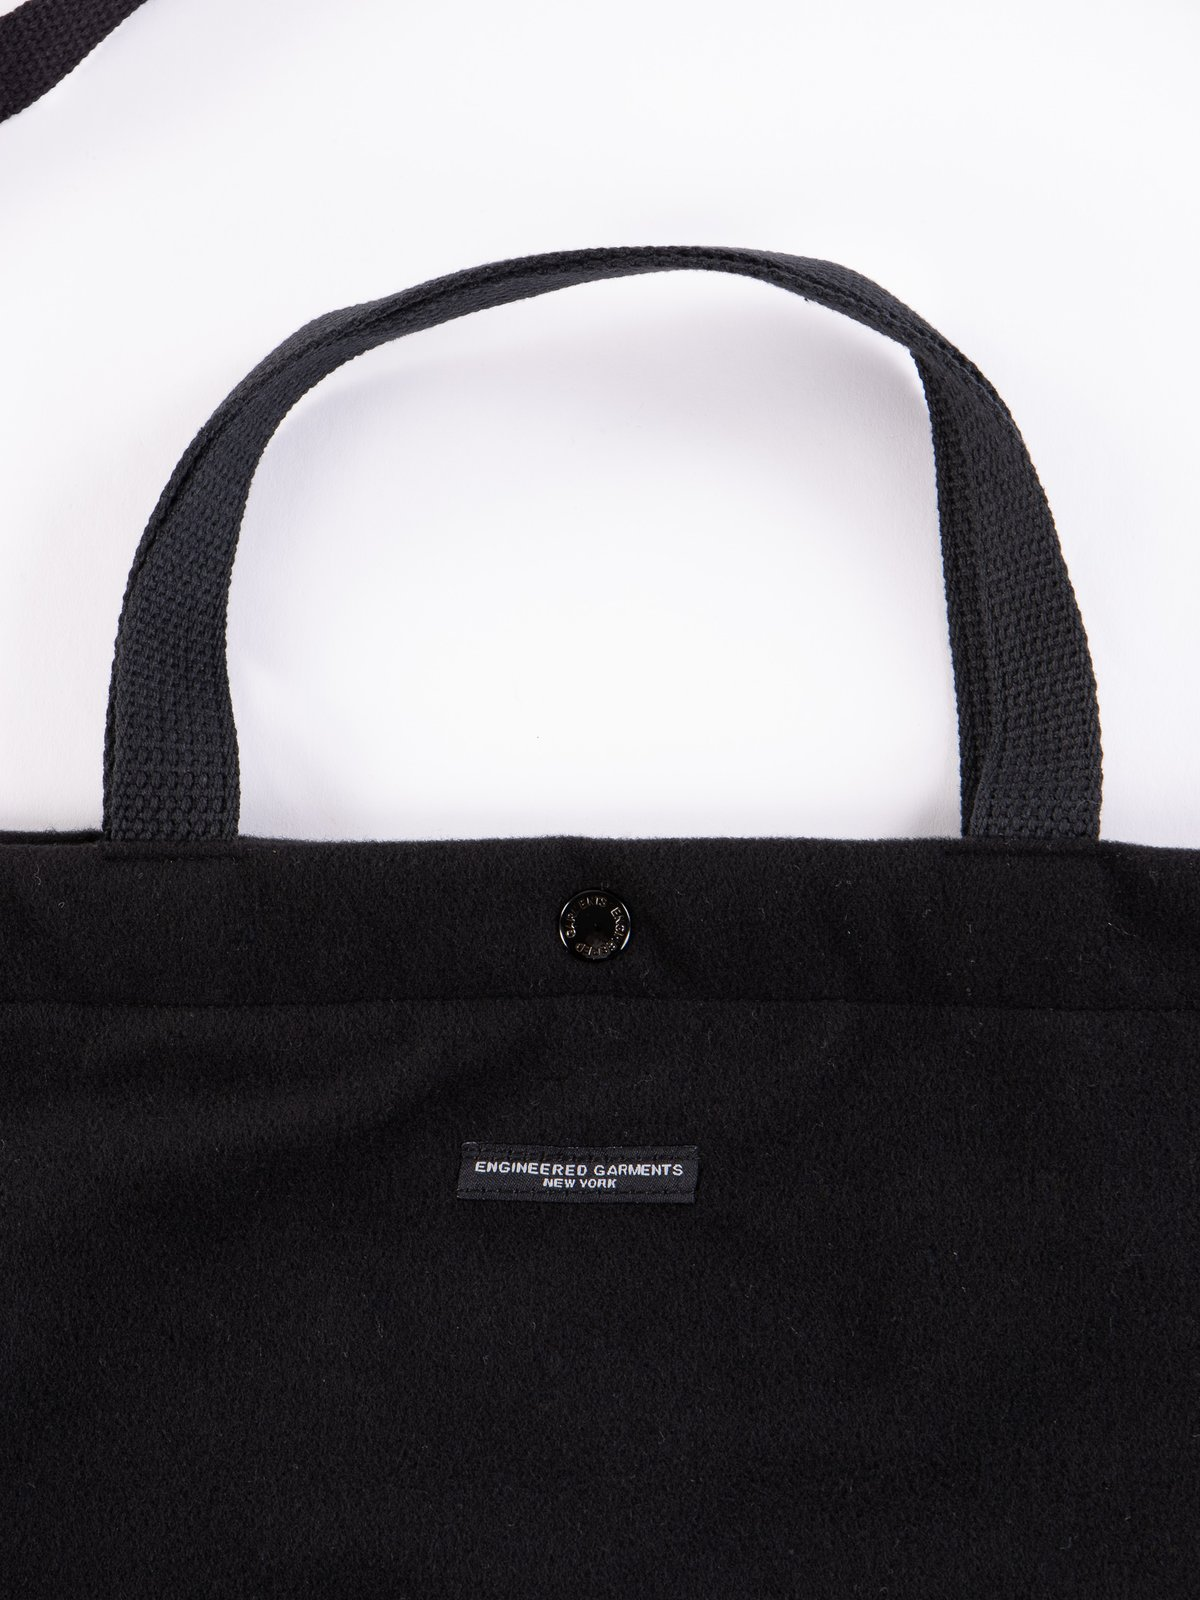 Black Polyester Fake Melton Carry All Tote - Image 2